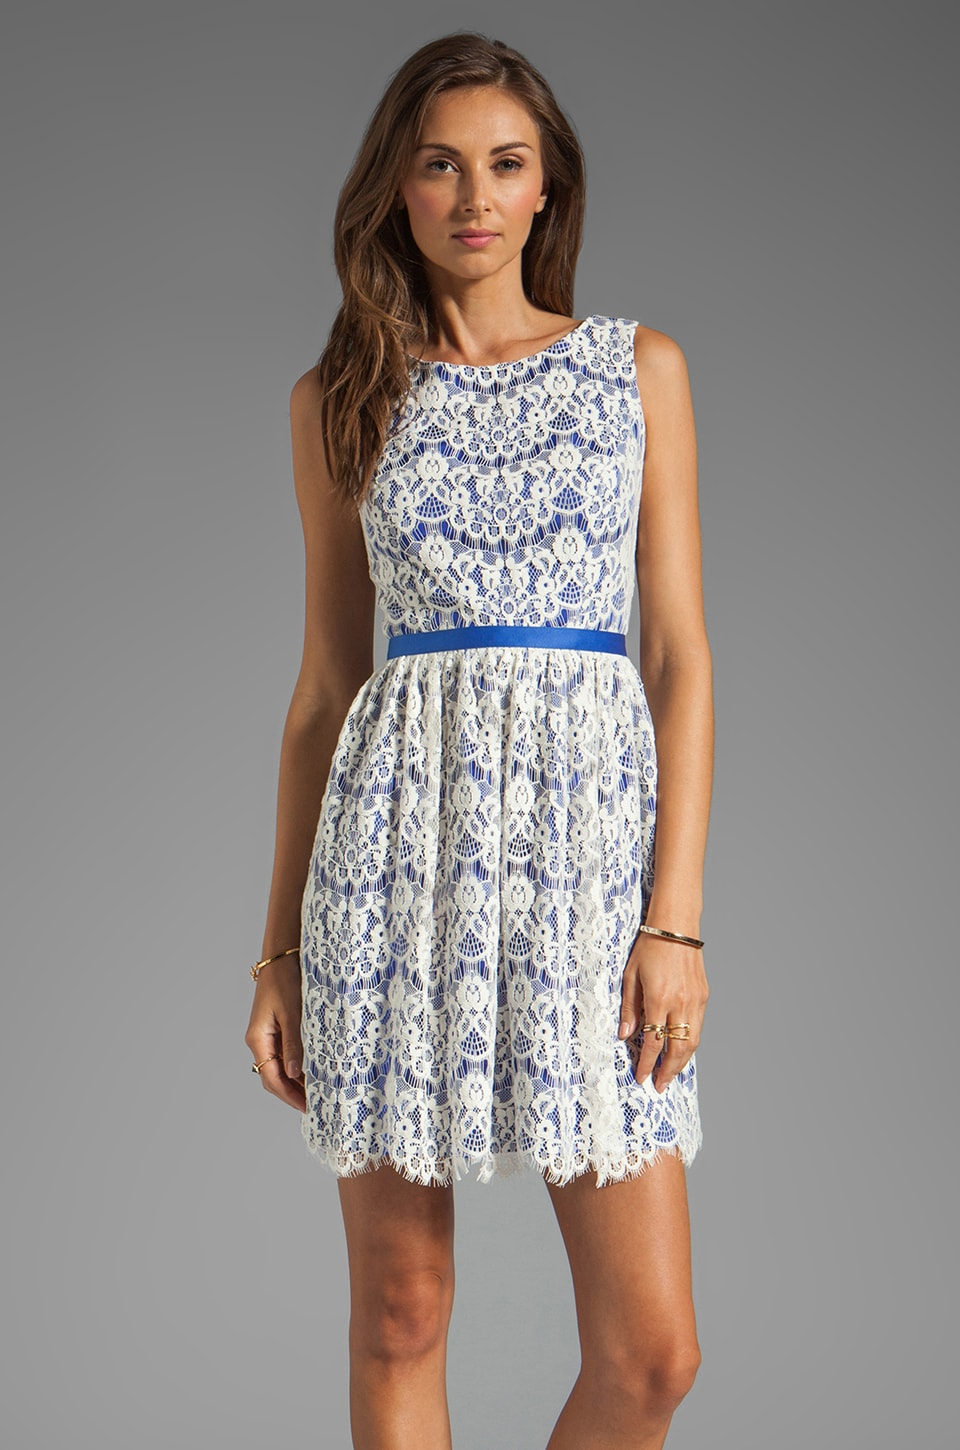 Shoshanna June Lace Dress in Ivory w/ French Blue